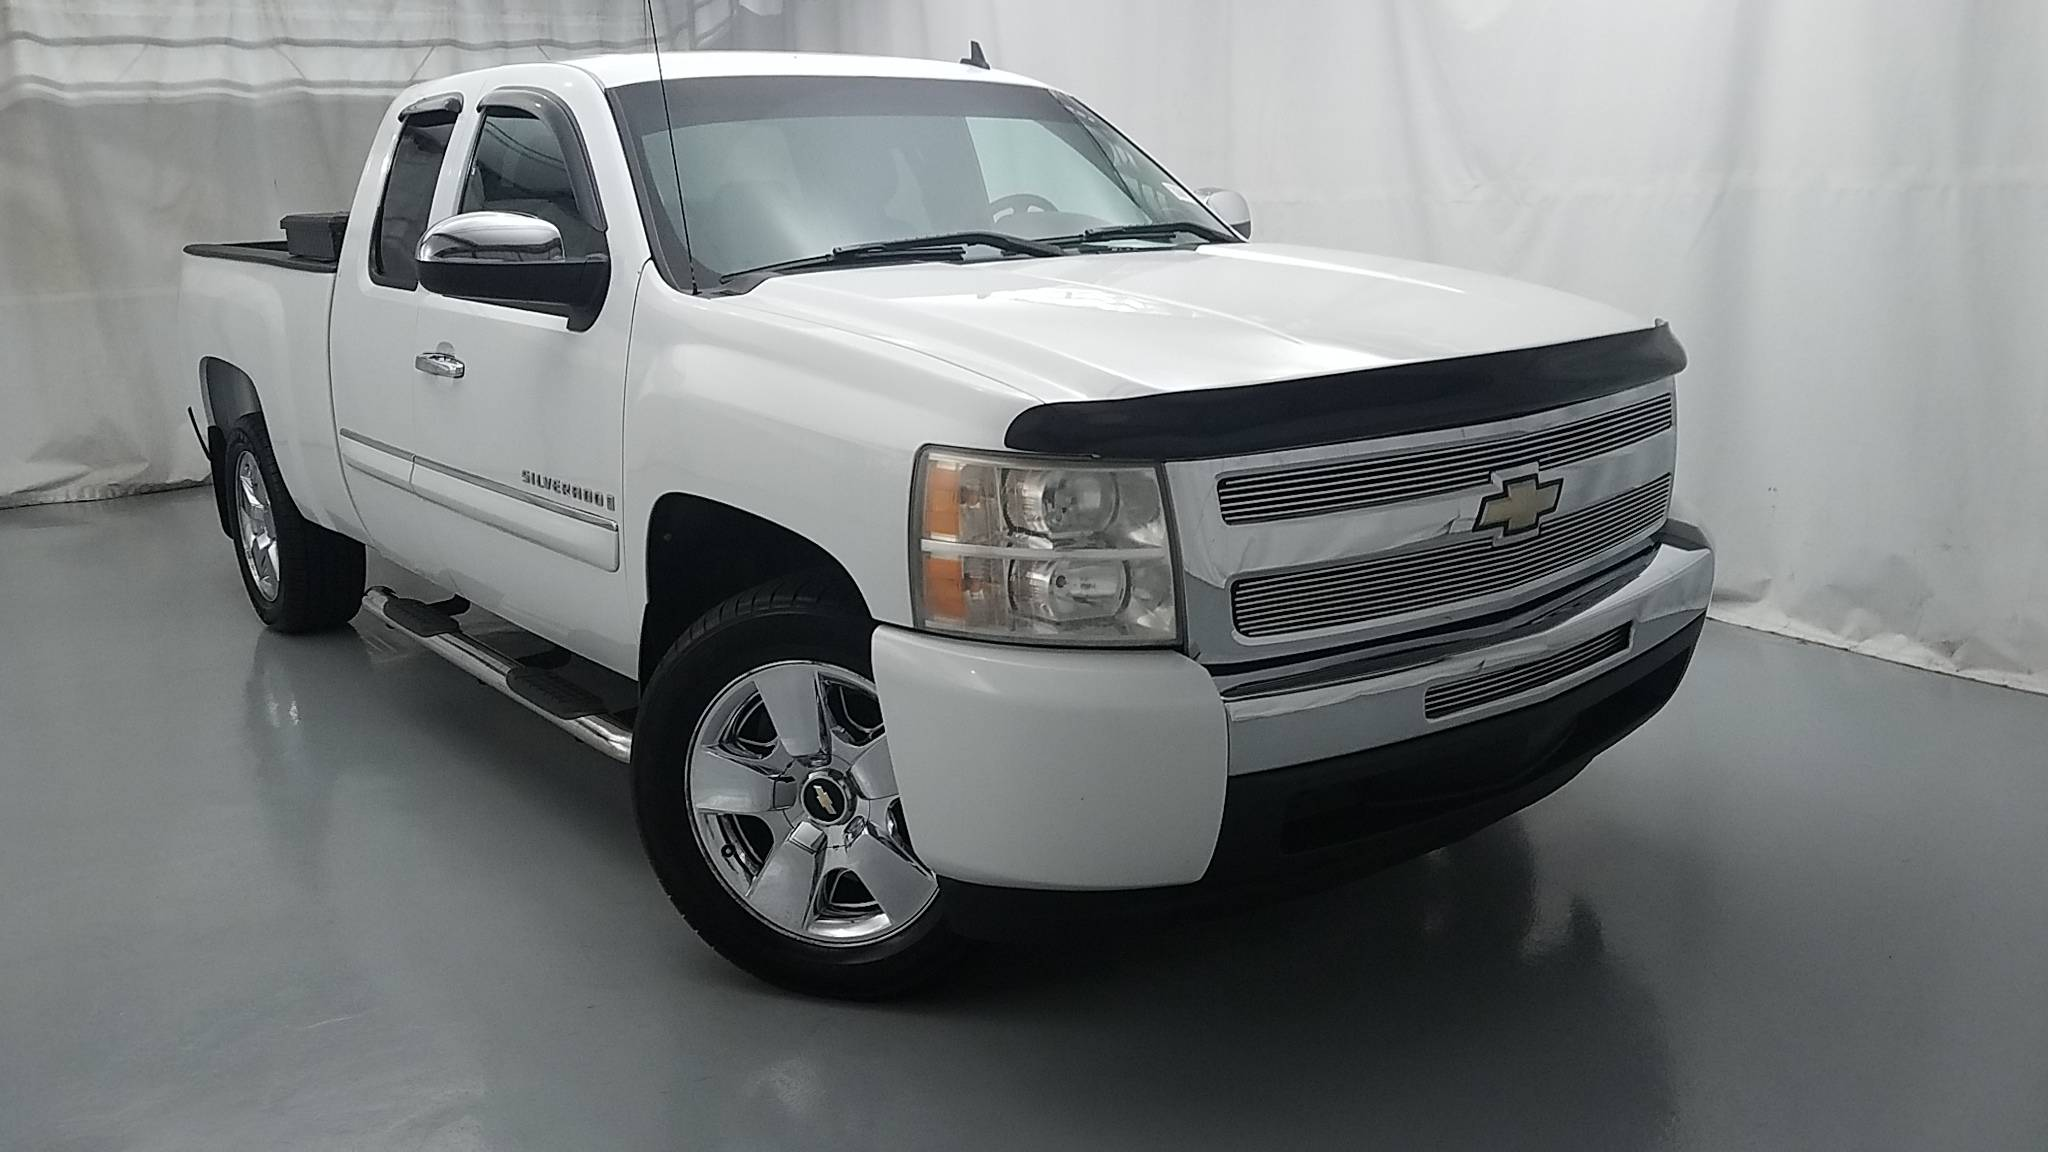 Pre owned Vehicles for Sale in Hammond LA